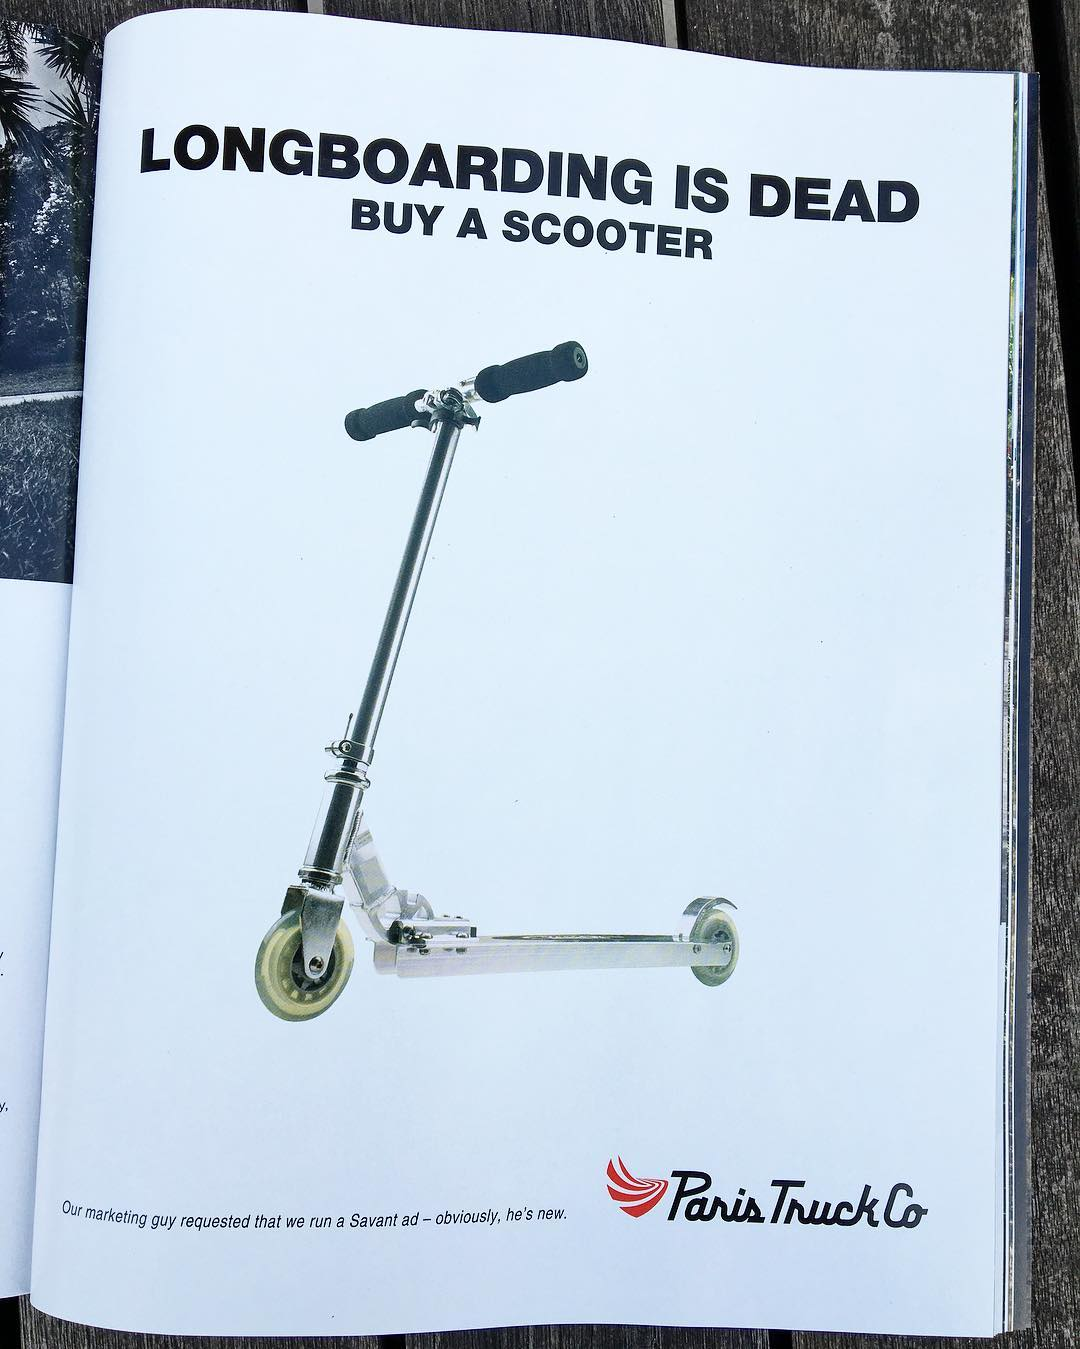 Our marketing guy requested that we run a Savant ad — obviously, he's new! Our newest ad, as seen in the latest @skateslate magazine. #paristrucks #skateslate #dontactuallygooutandbuyascooter #longboardingisntreallydeadsocalmdown